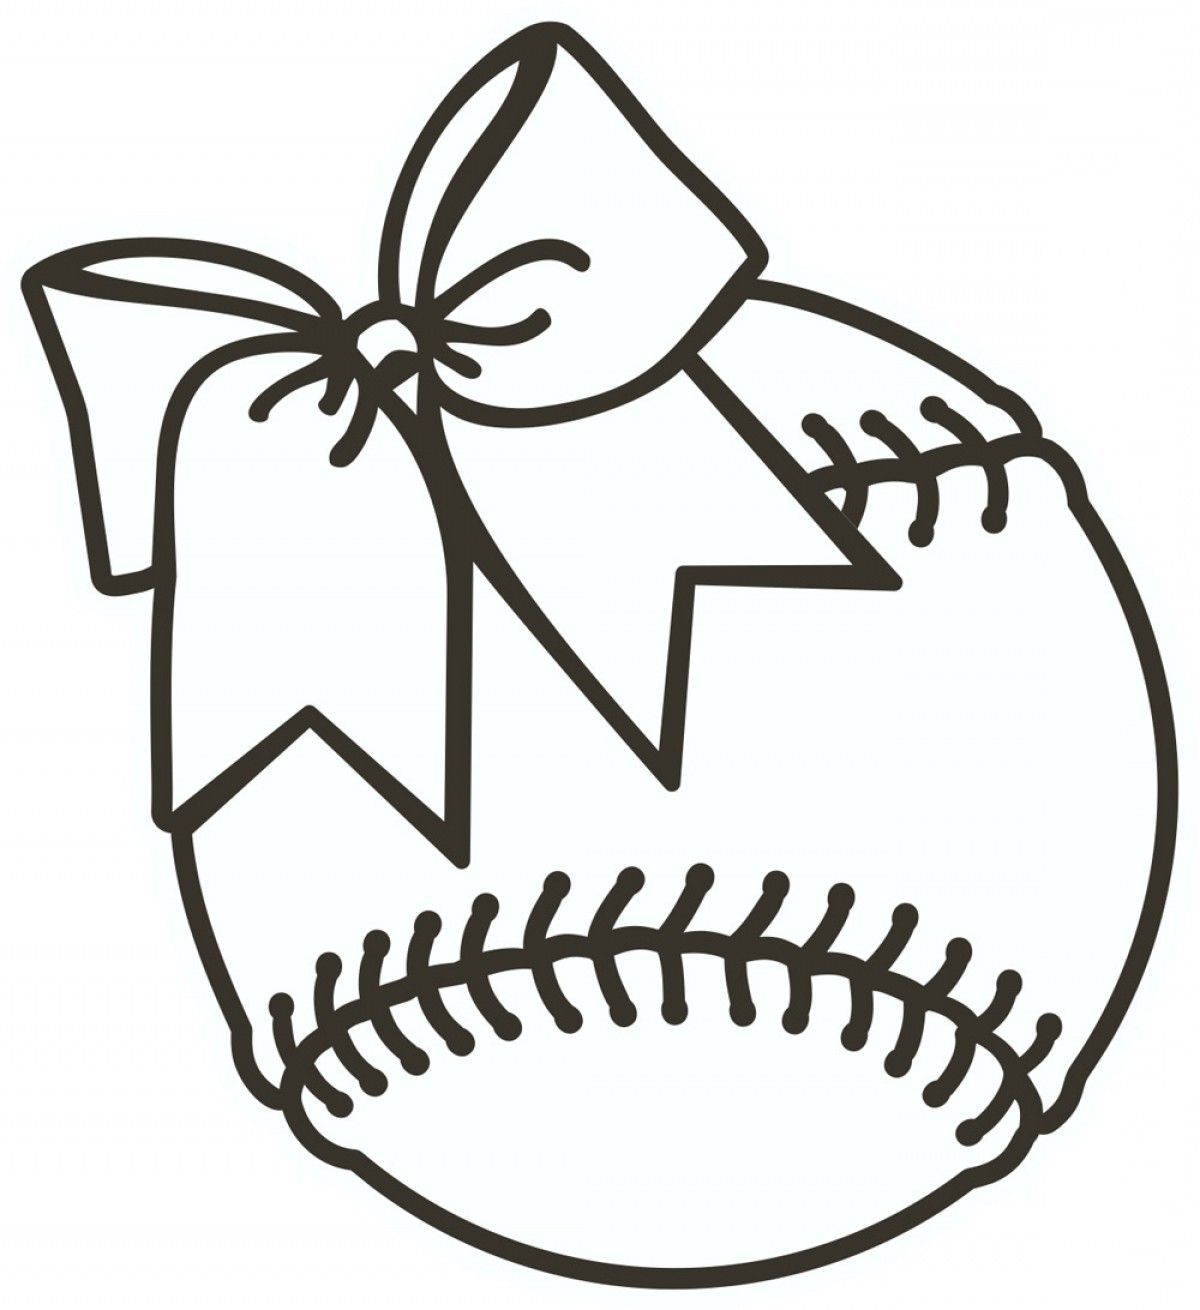 Baseball clipart black and white transdfer express image download Softball Clipart Black And White ... | Vinyl Images | Softball ... image download